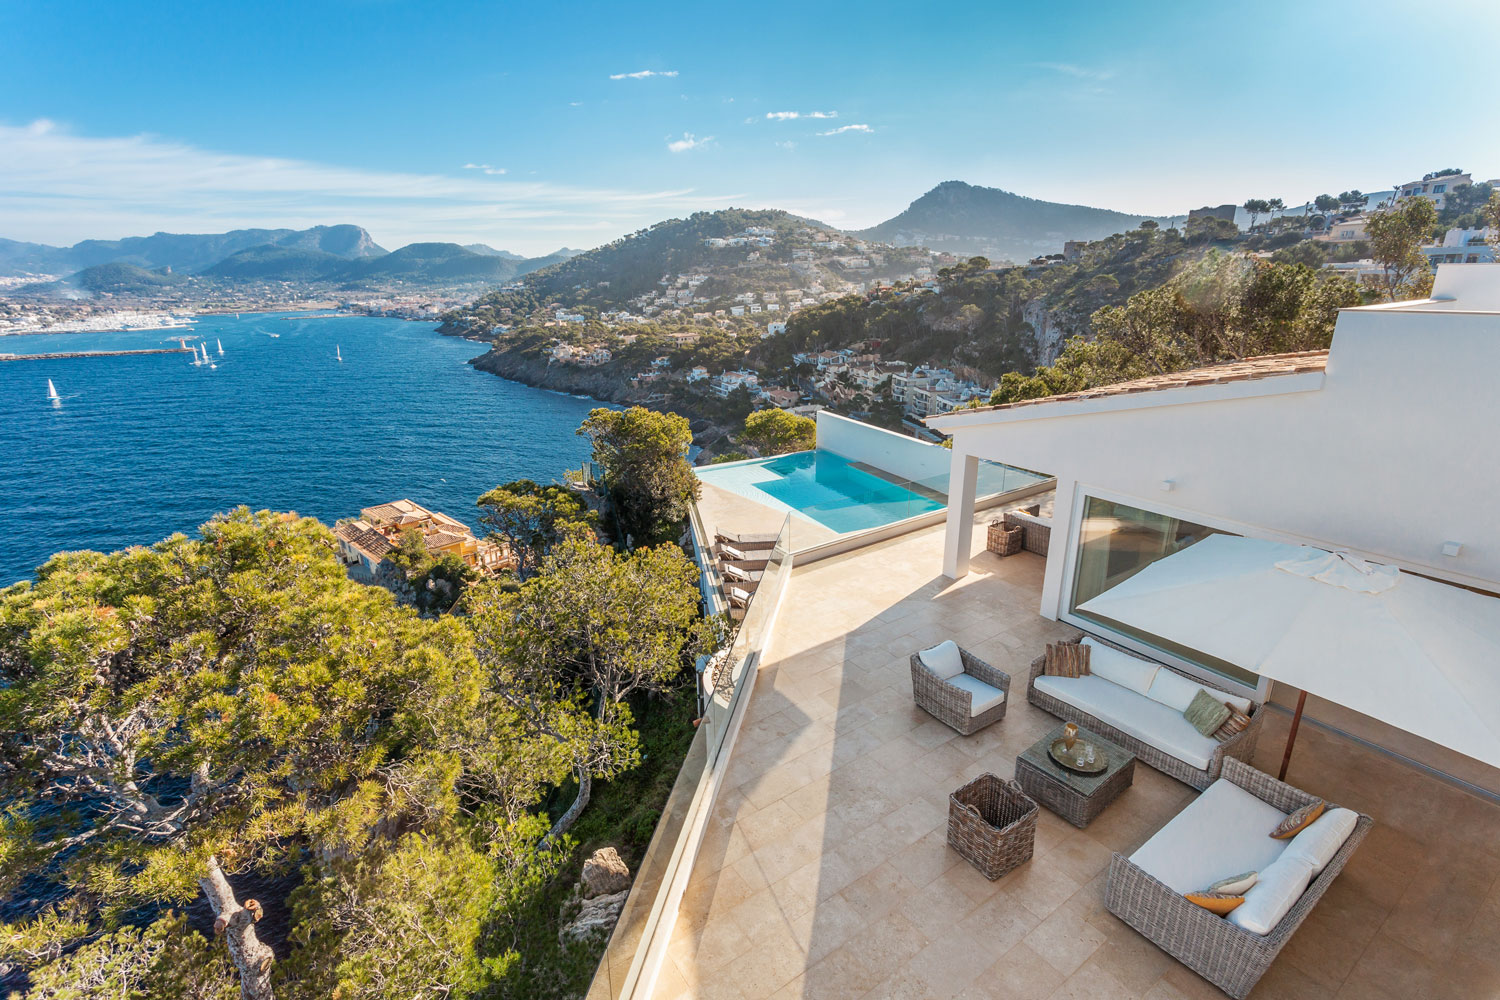 Five of Spain's Ten Most Expensive Property Hotspots are in the Balearics